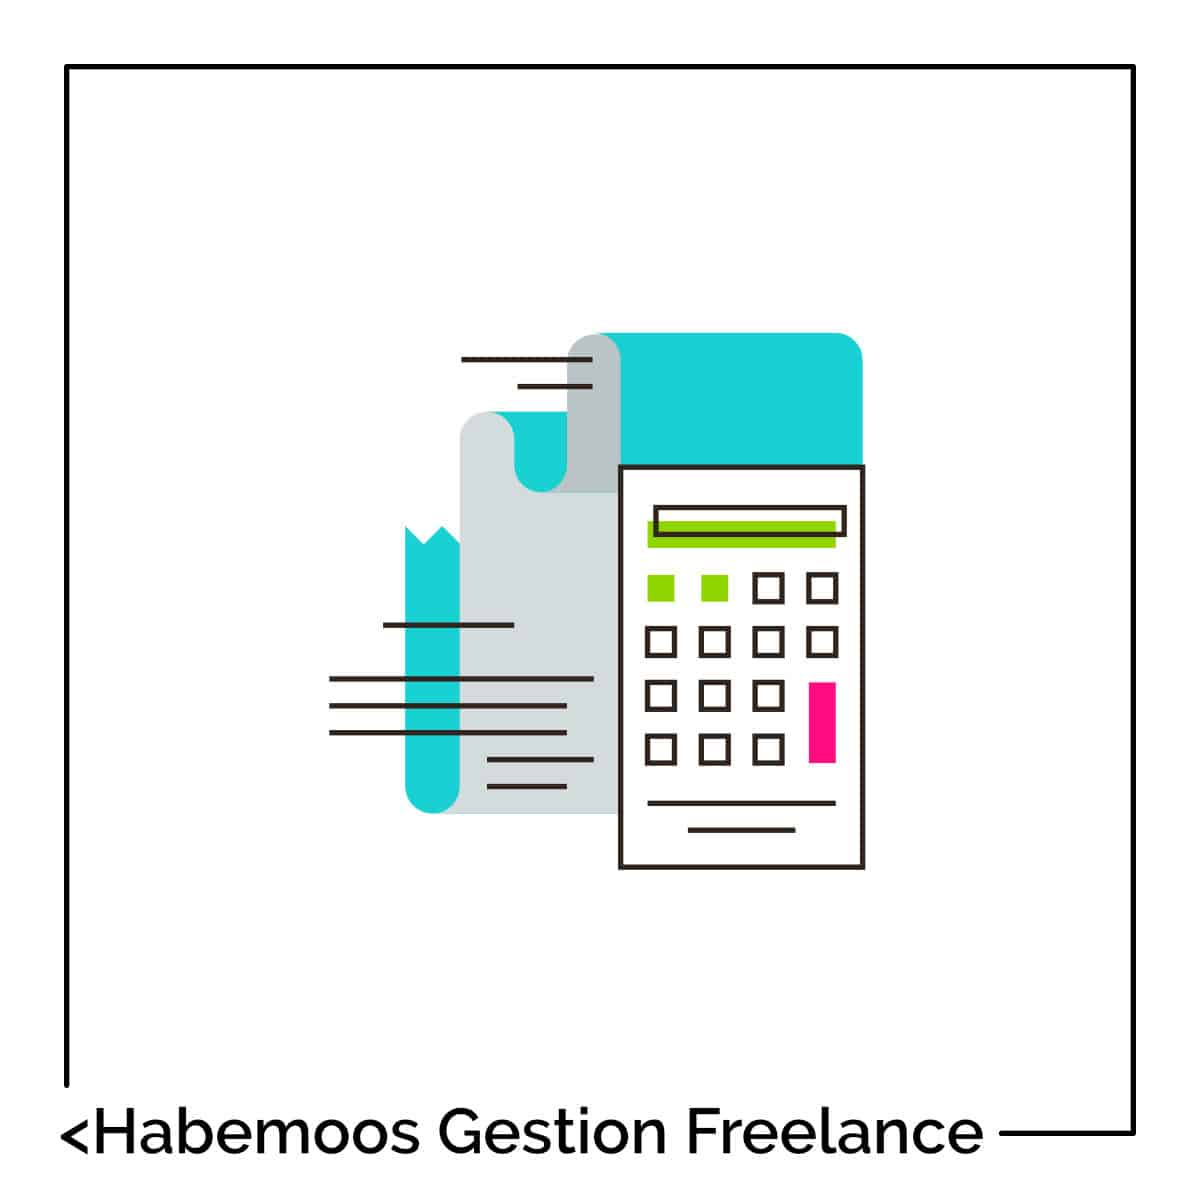 Habemoos gestion freelance